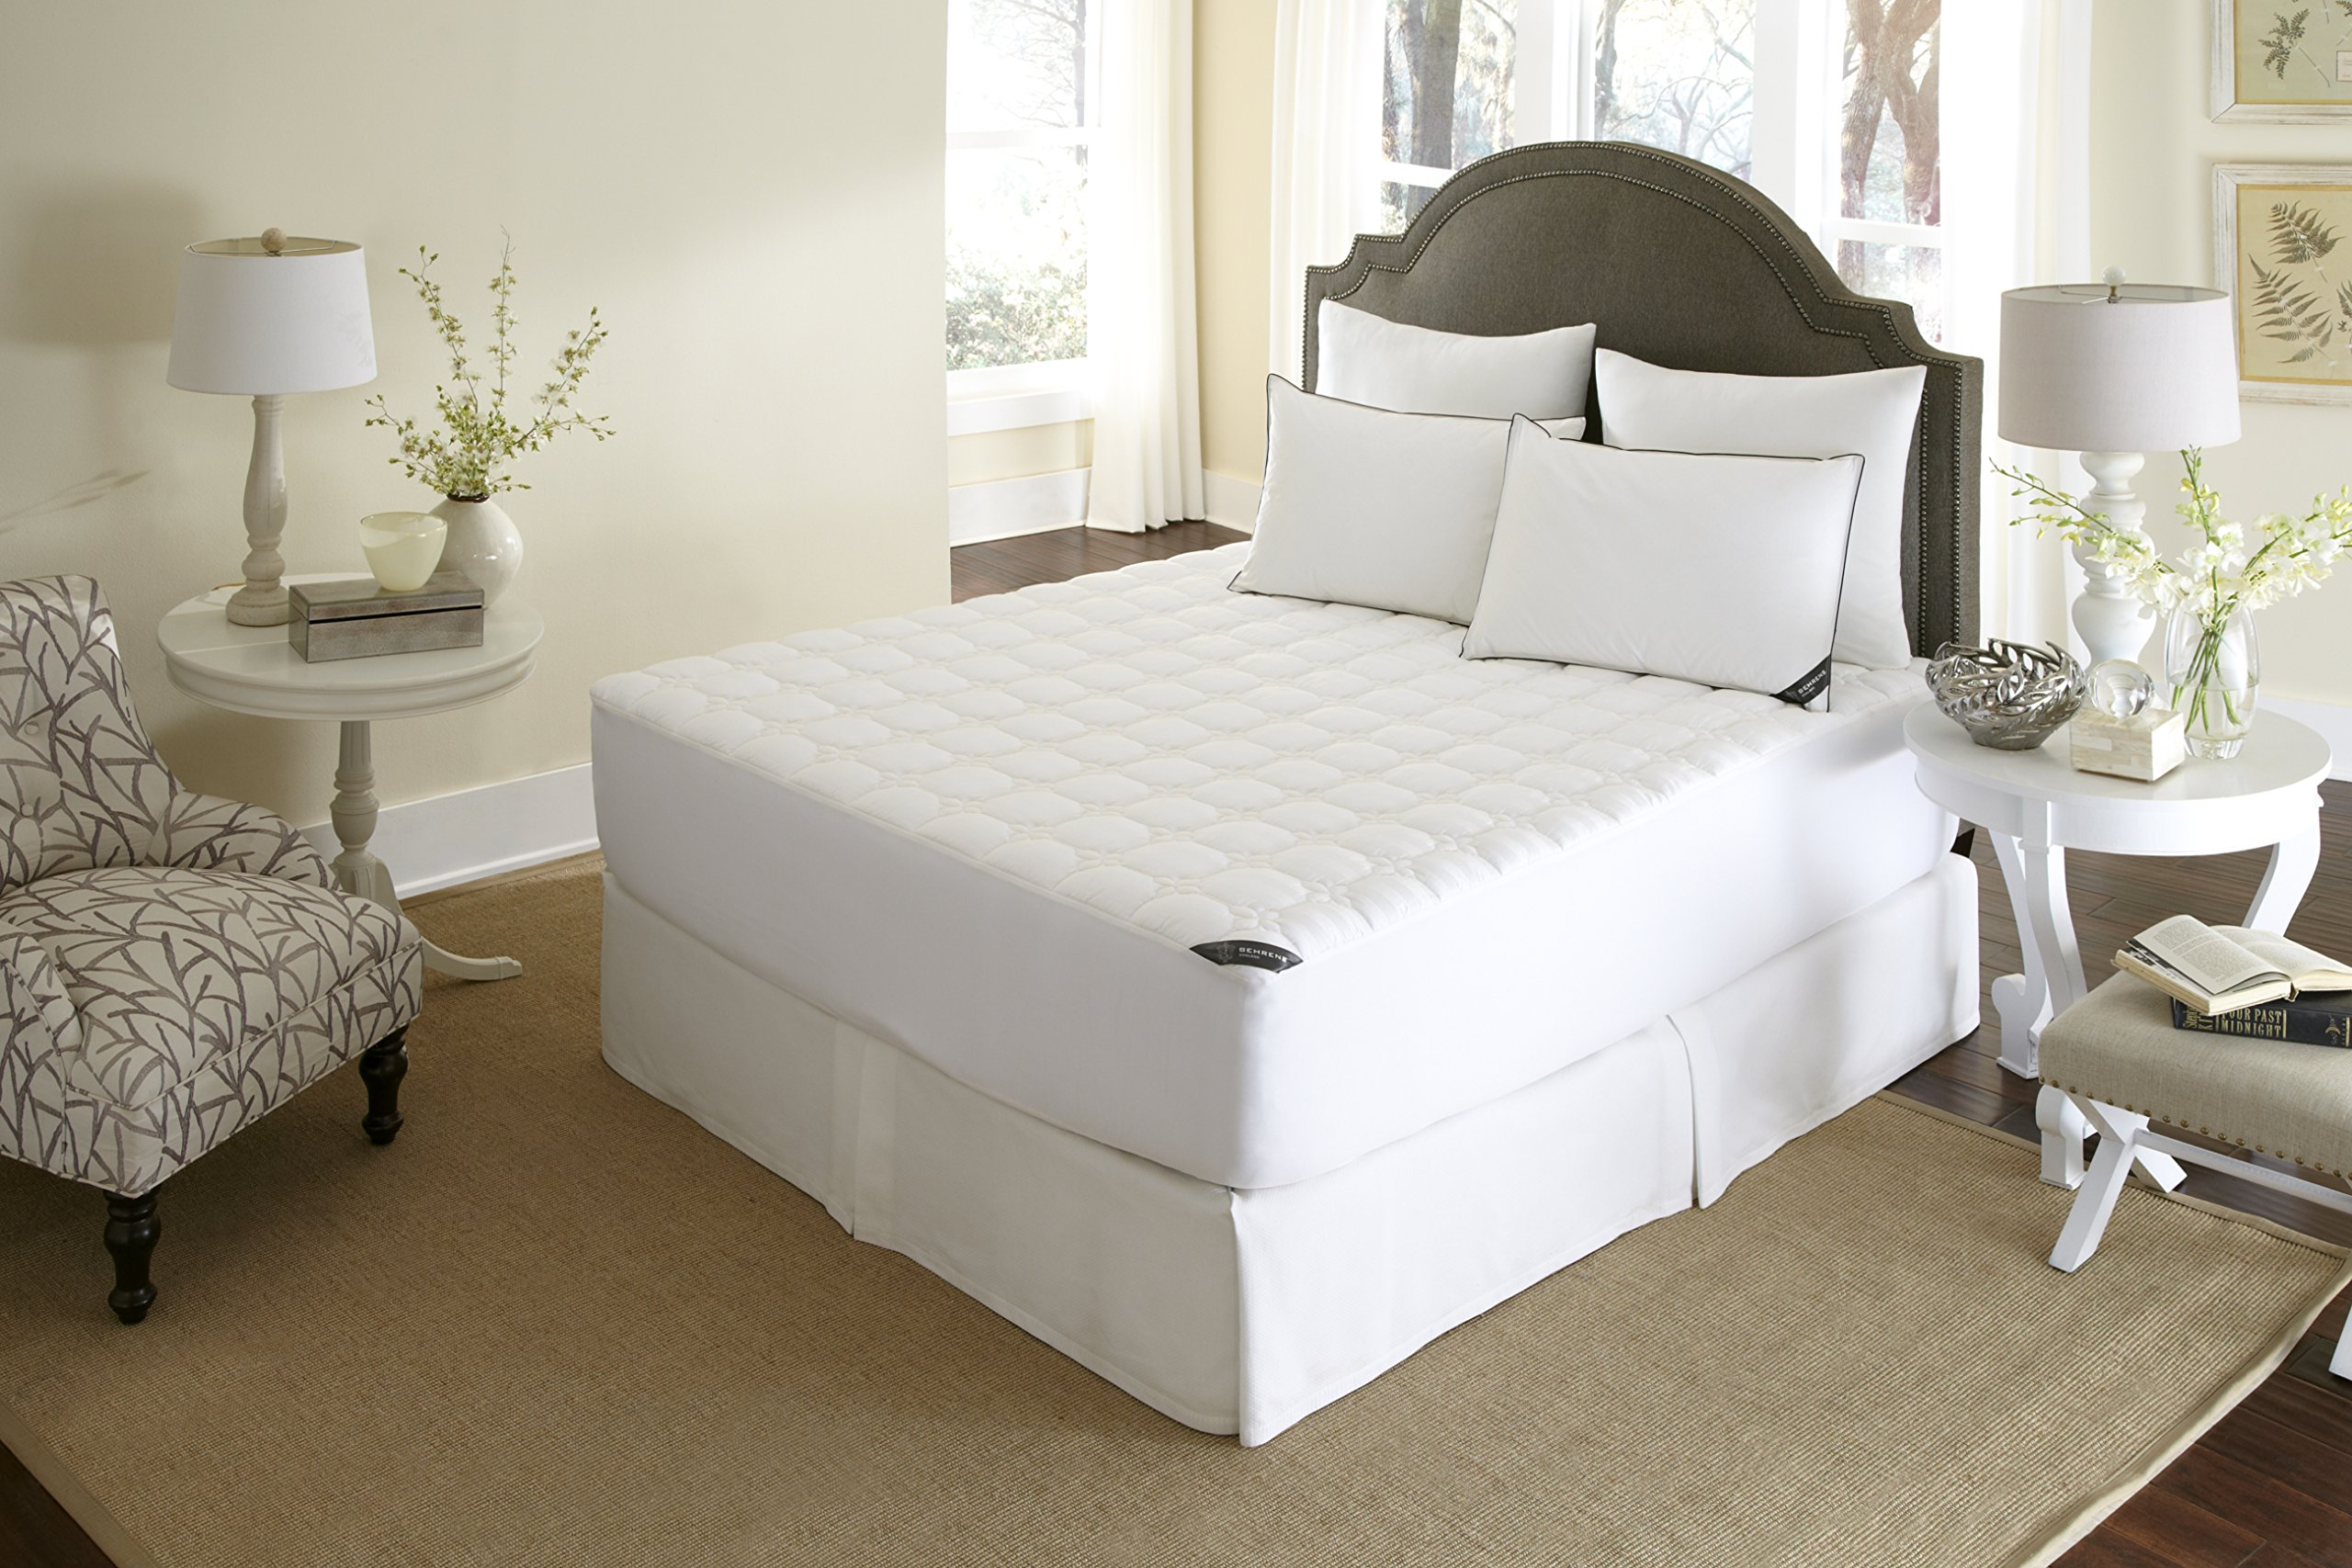 Behrens of England MP-108-6Q European Hotel 100% Cotton 500 Thread Count Waterproof Mattress Pad, Deep Skirt Full Protections, Stain Resistance, Anti-Bacterial and Hypoallergenic, Queen, White